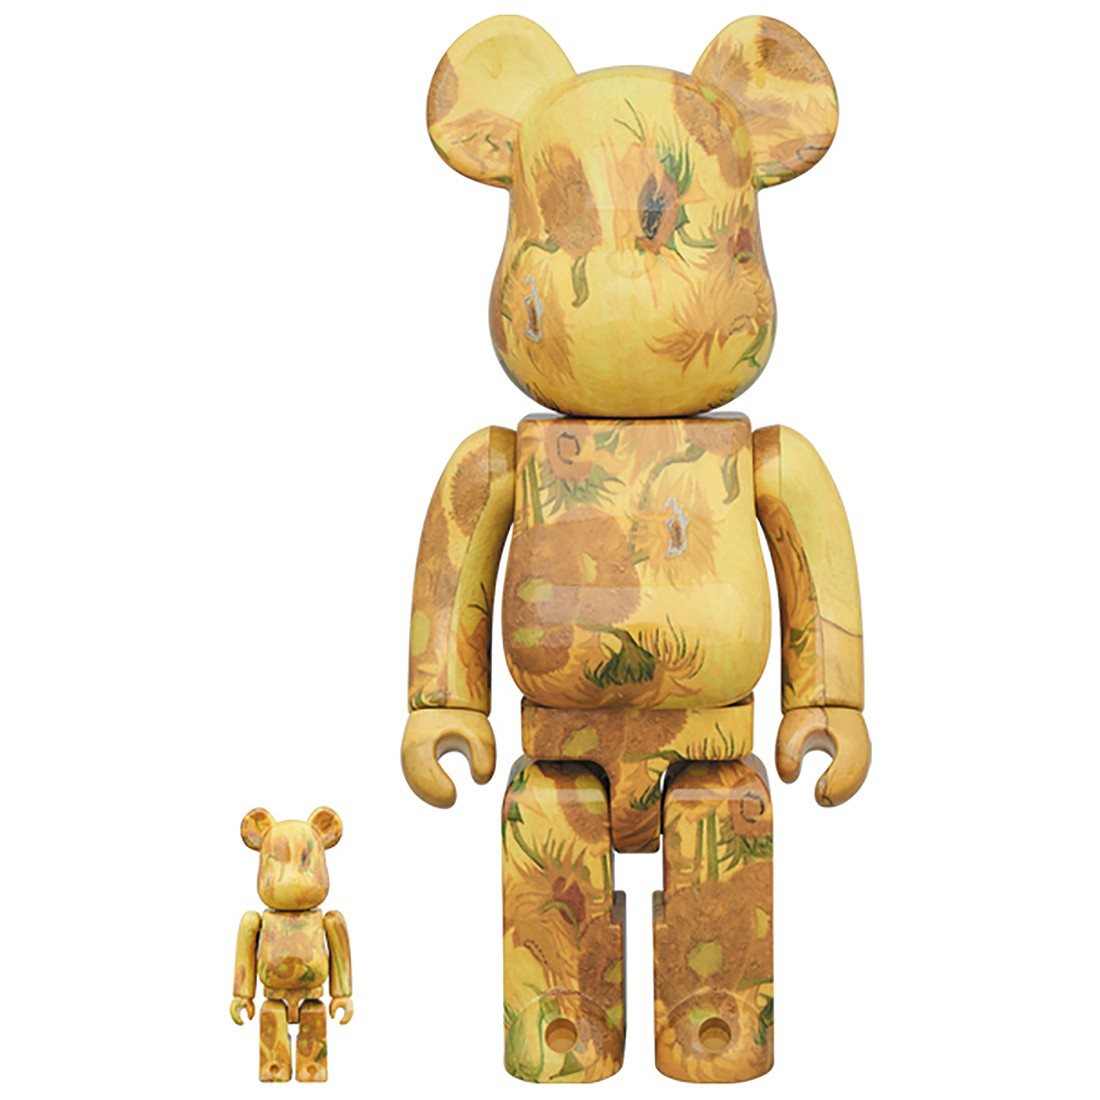 PREORDER - Medicom Van Gogh Museum Sunflowers 100% 400% Bearbrick Figure Set (yellow)